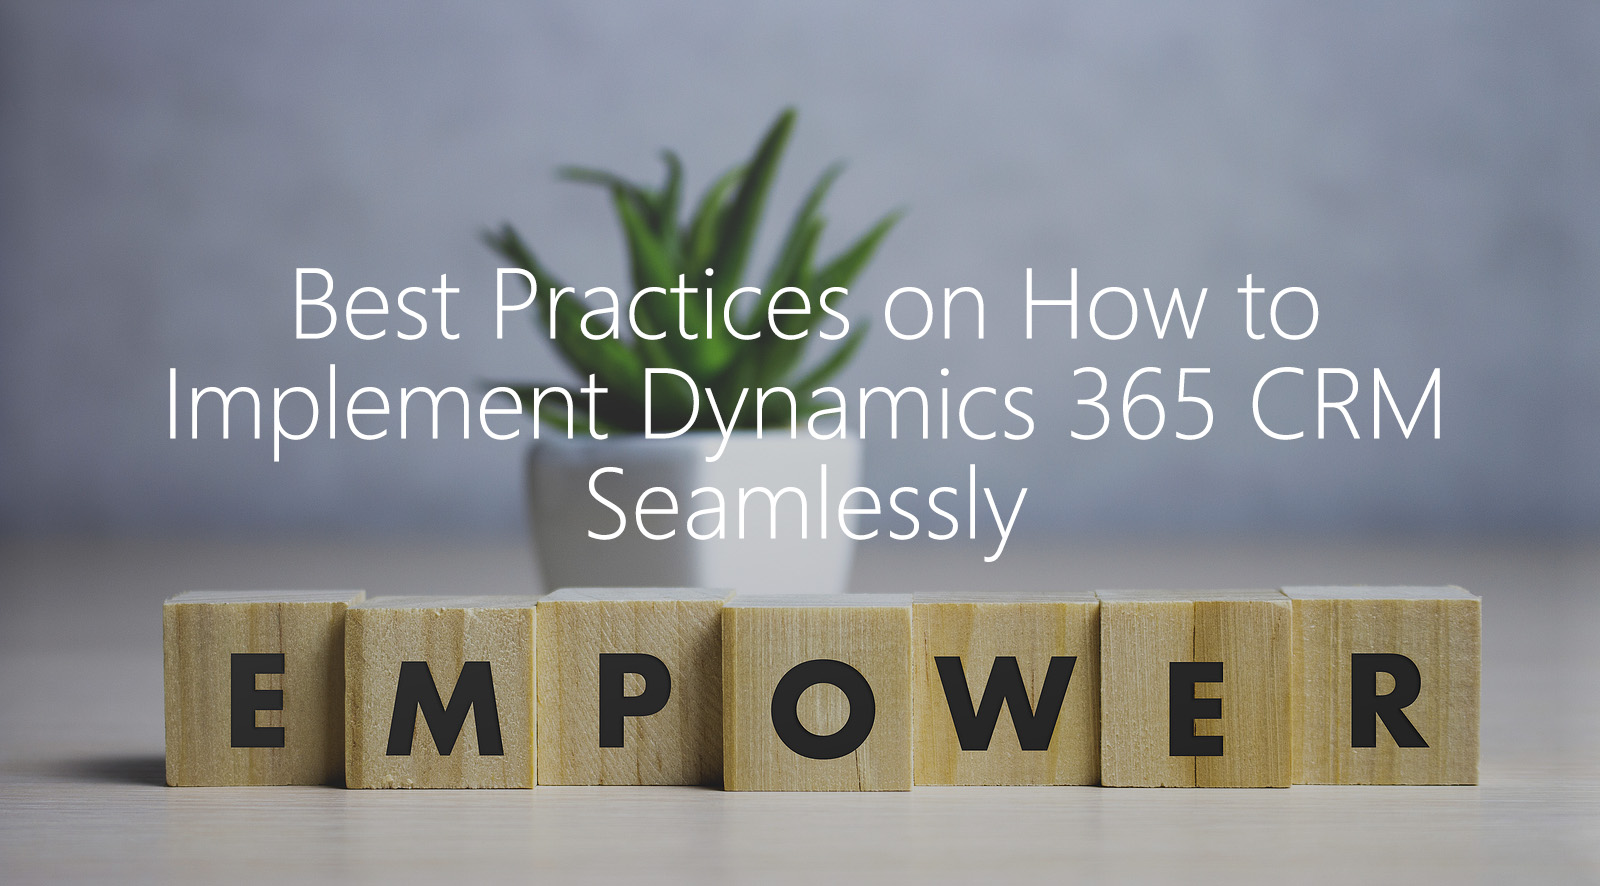 Best Practices on How to Implement Dynamics 365 CRM Seamlessly